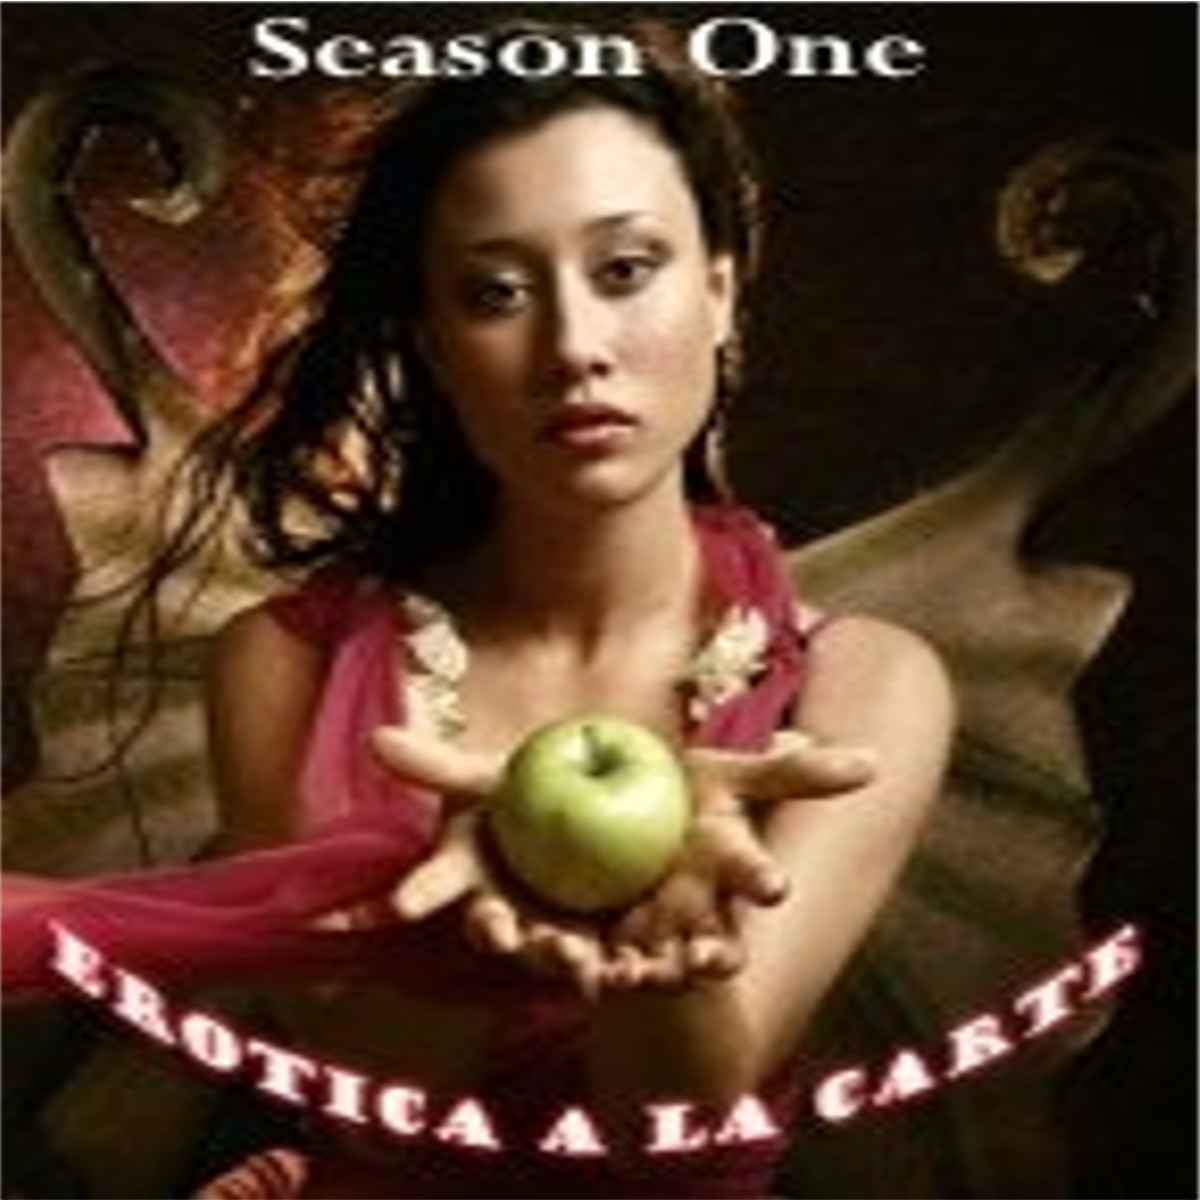 Erotica a la Carte - Season One